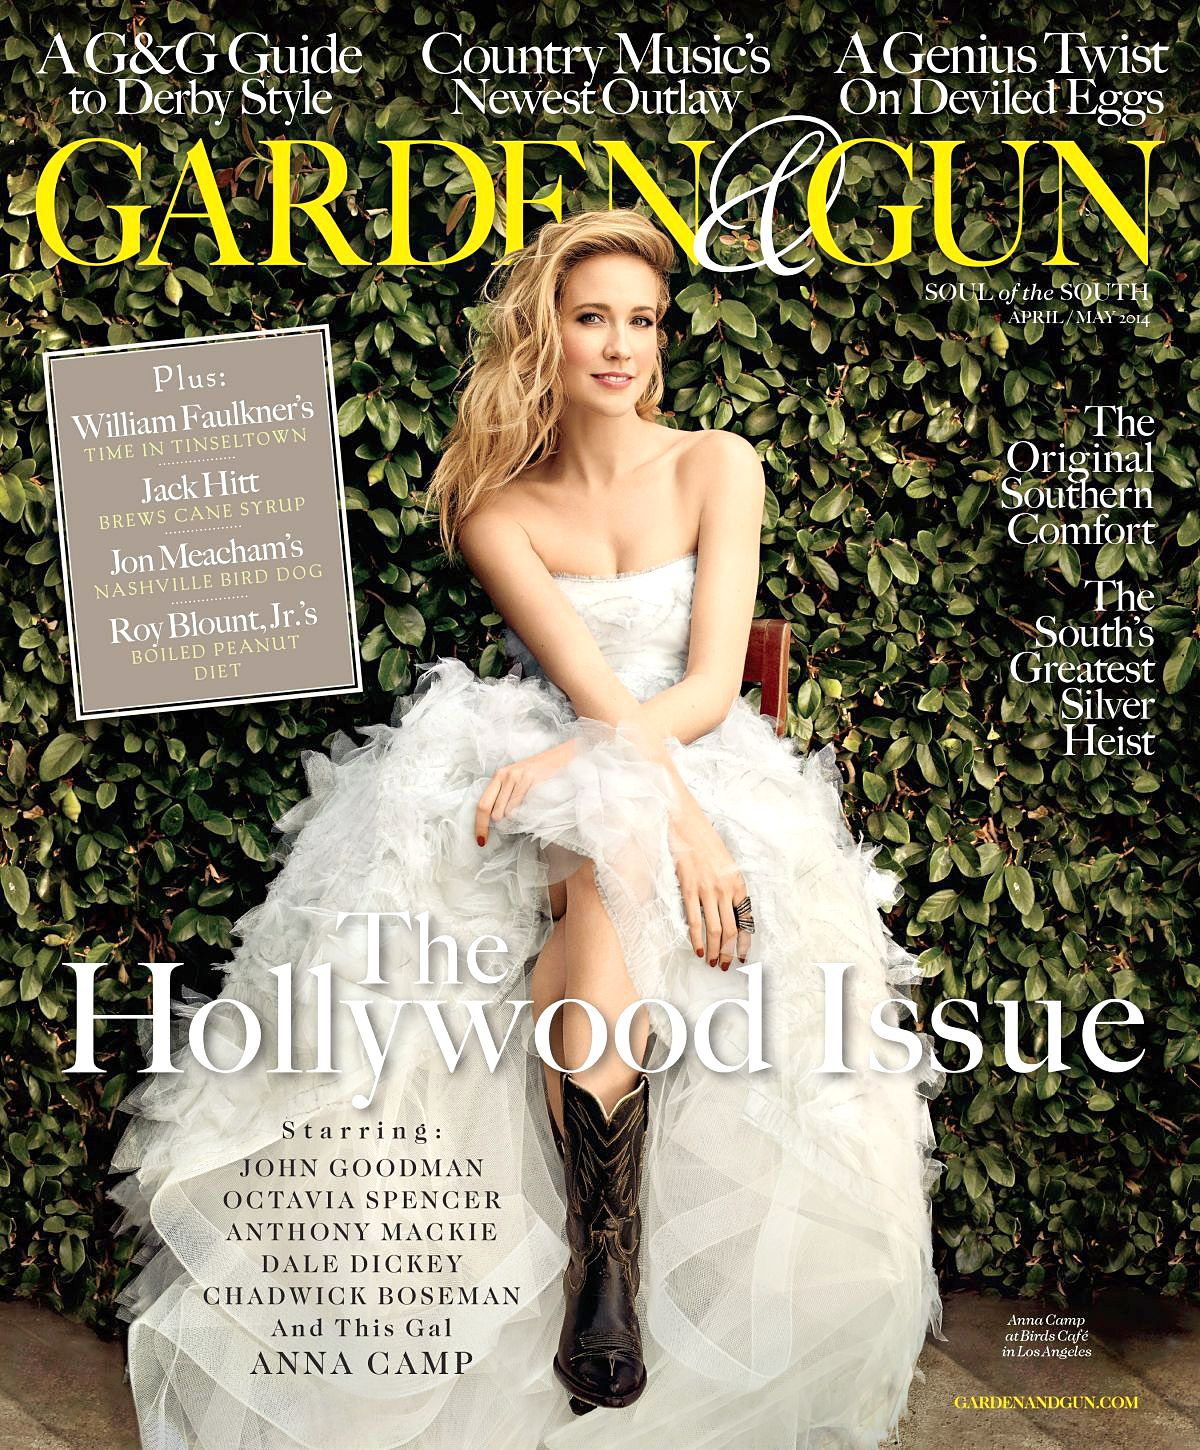 Perfect Bride Anna Camp Wears Wedding Dress For Garden And Gun